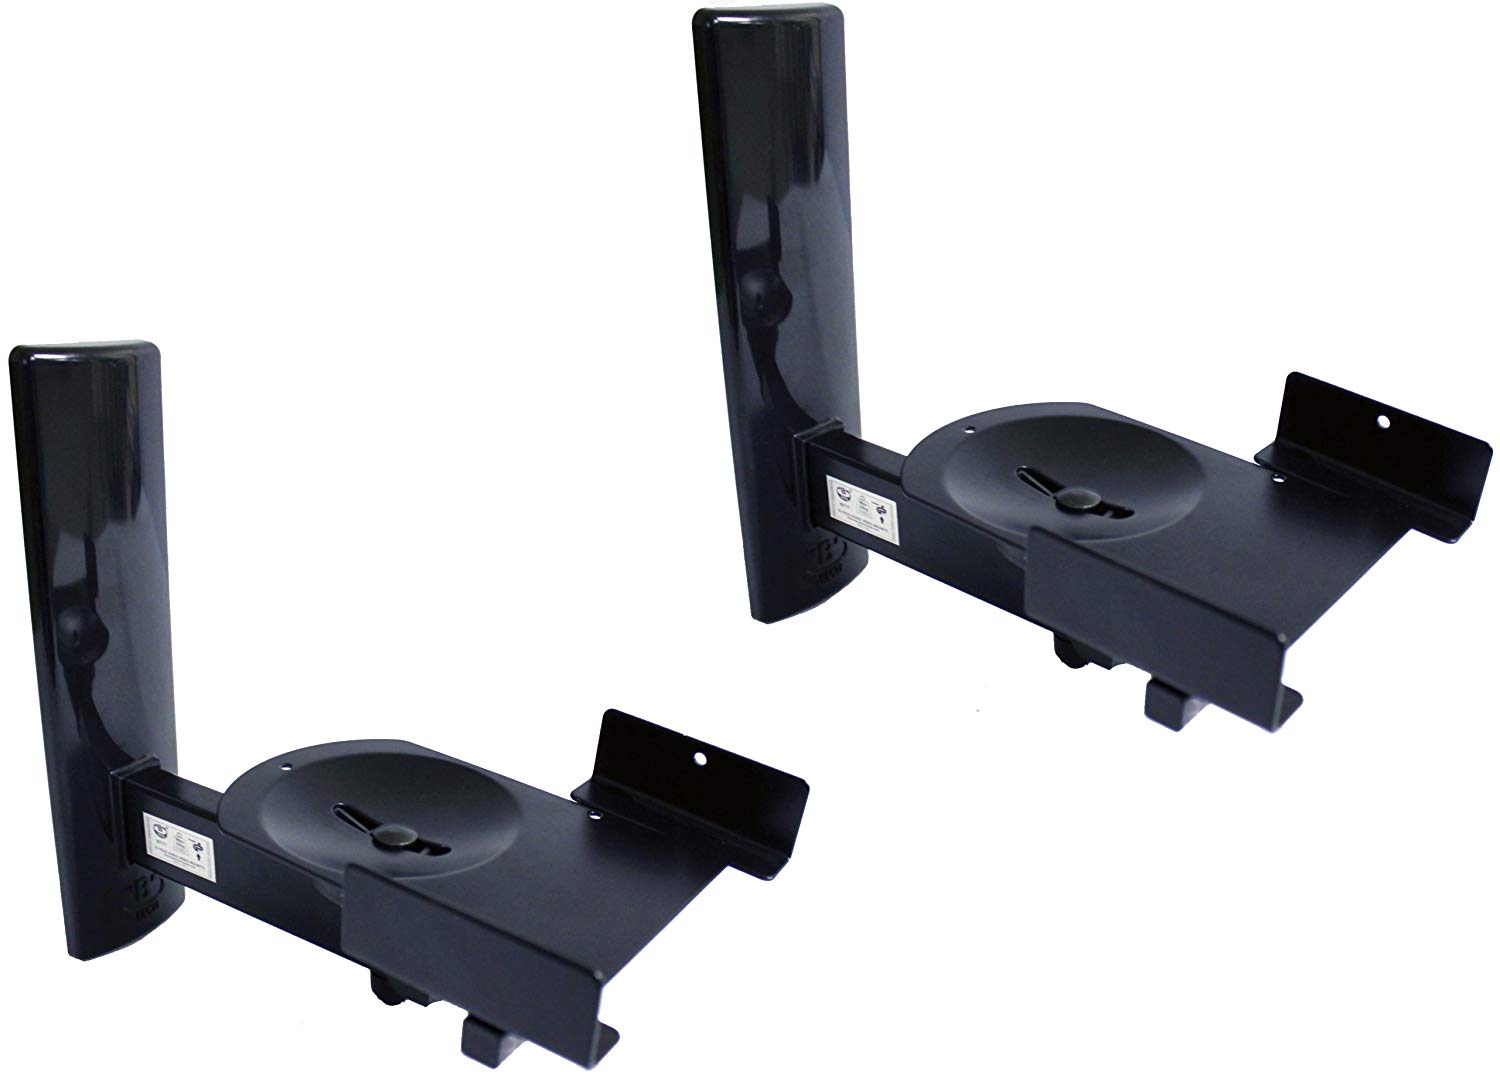 B-Tech BT77 Ultragrip Pro Speaker Mount